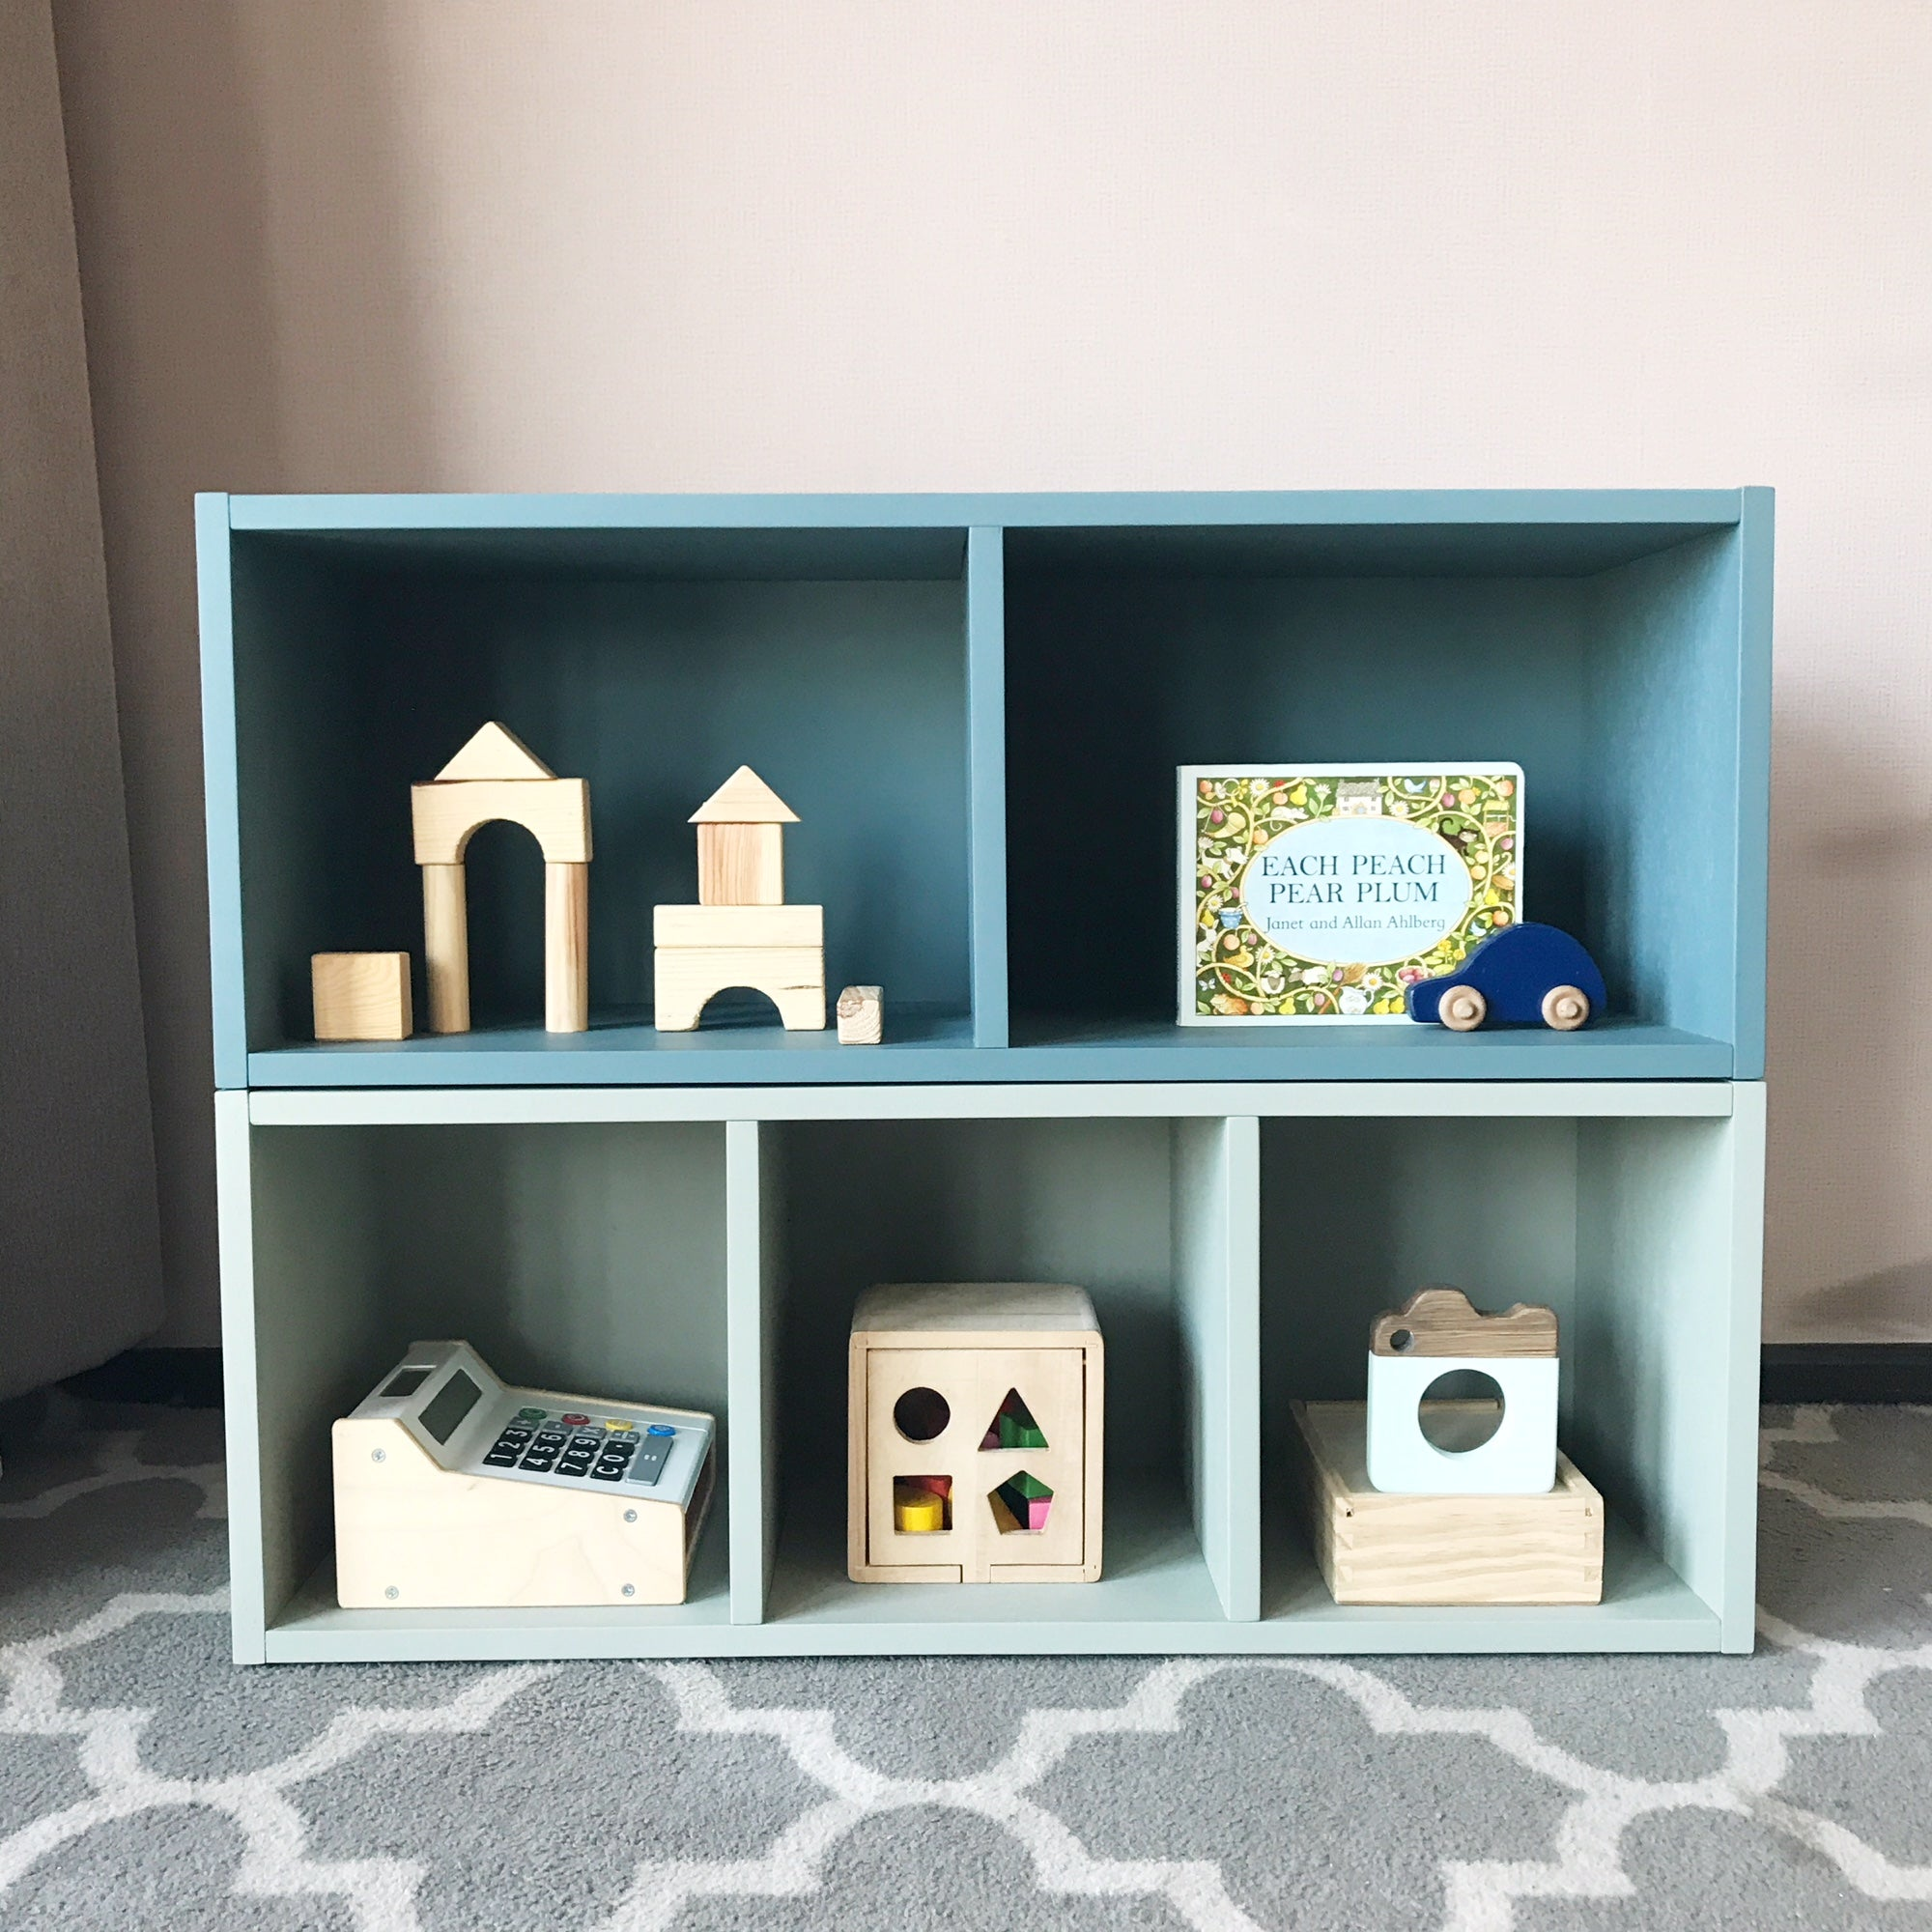 Montessori Learning Shelves (2 compartments)